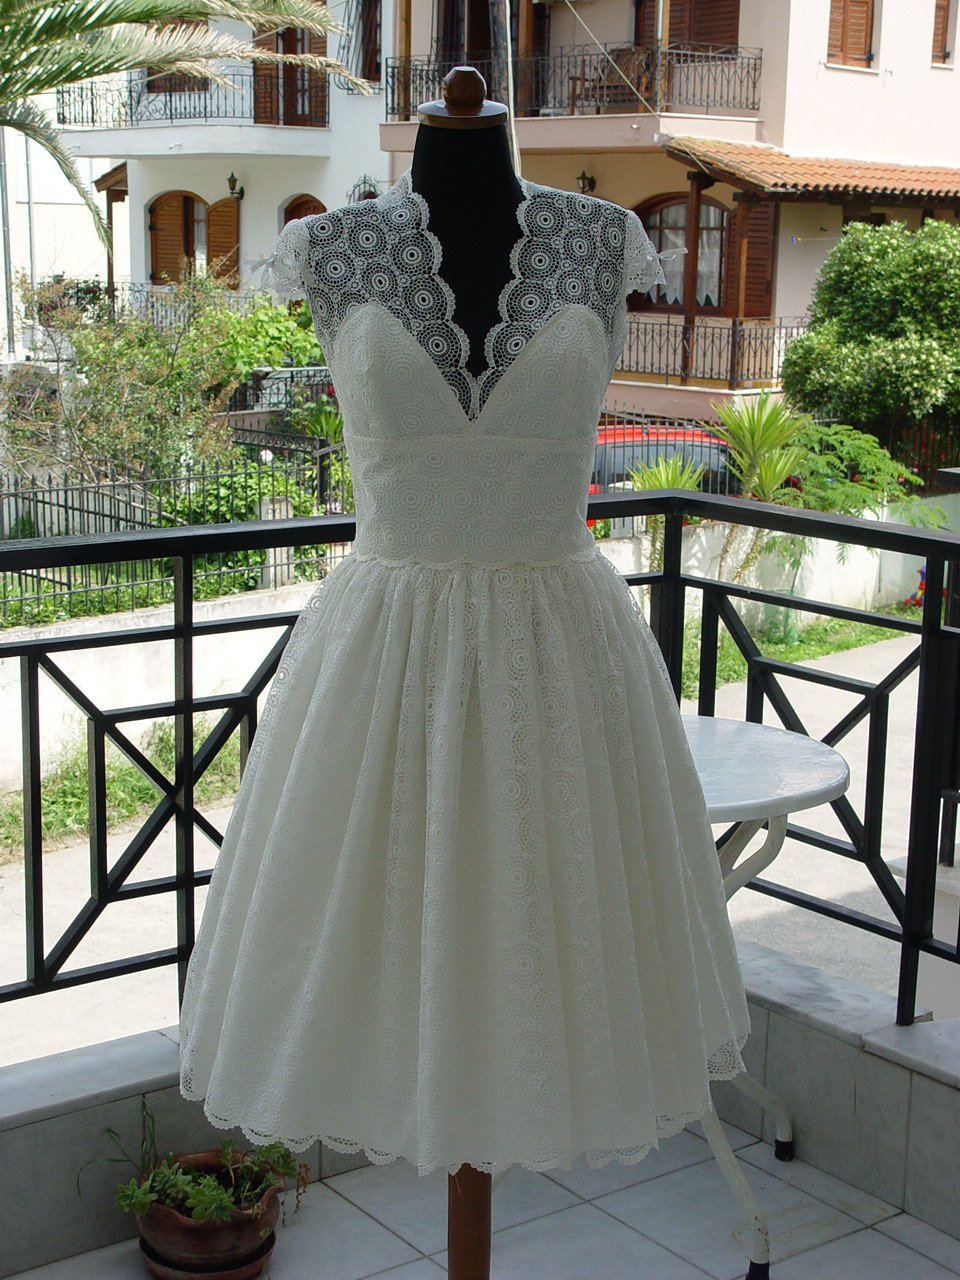 Lovely-lace-lwds-for-the-brides-wedding-reception-look-cap-sleeves-2.full